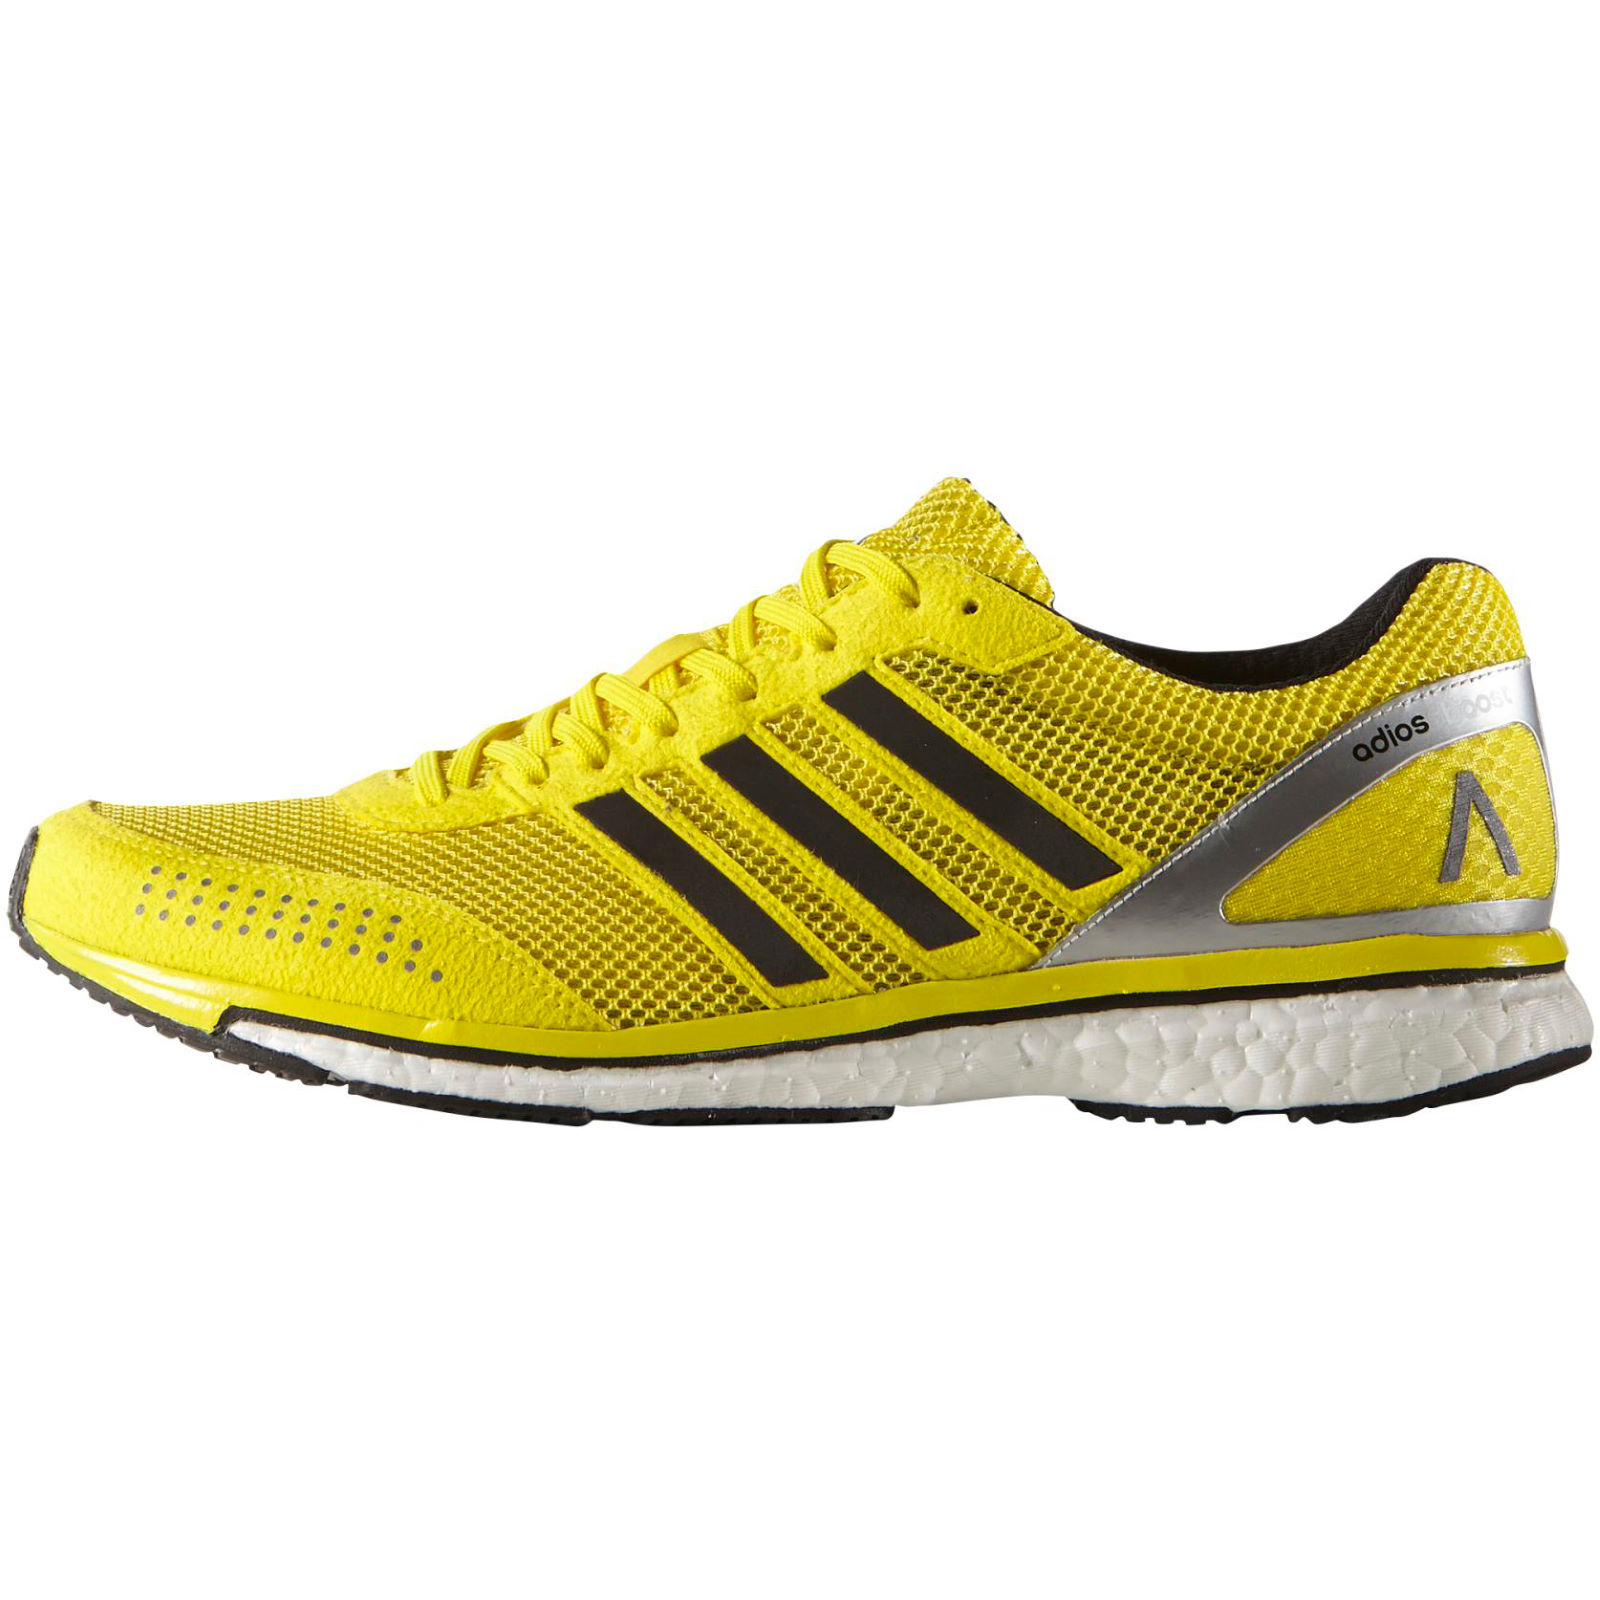 wiggle adidas adizero adios boost 2 0 haile shoes aw15 racing running shoes. Black Bedroom Furniture Sets. Home Design Ideas